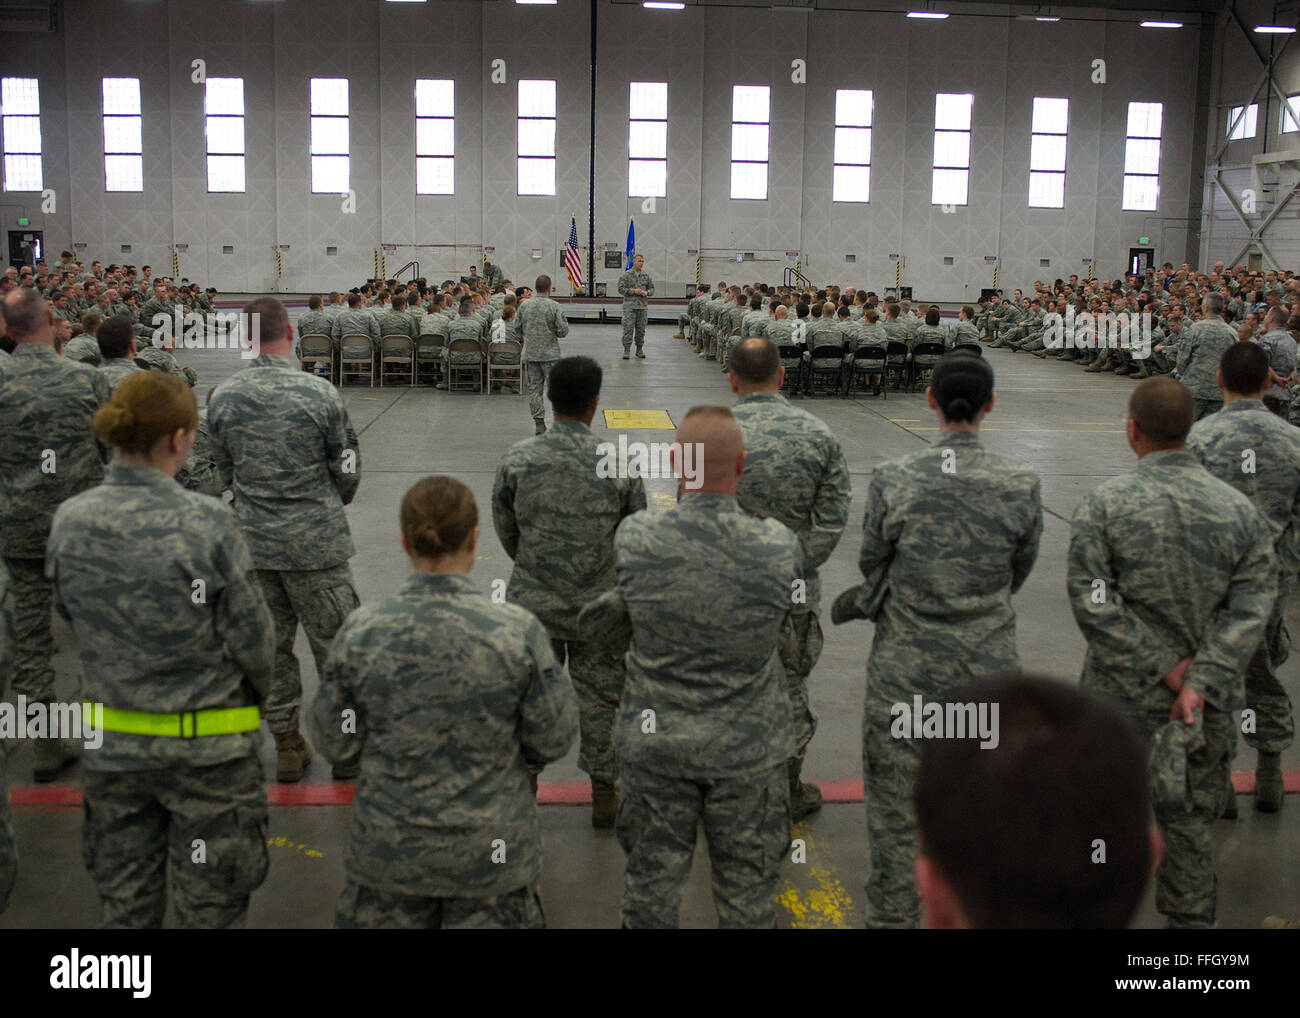 Chief Master Sgt. of the Air Force James A. Roy addresses Airmen during his visit to Joint Base Elmendorf-Richardson, - Stock Image